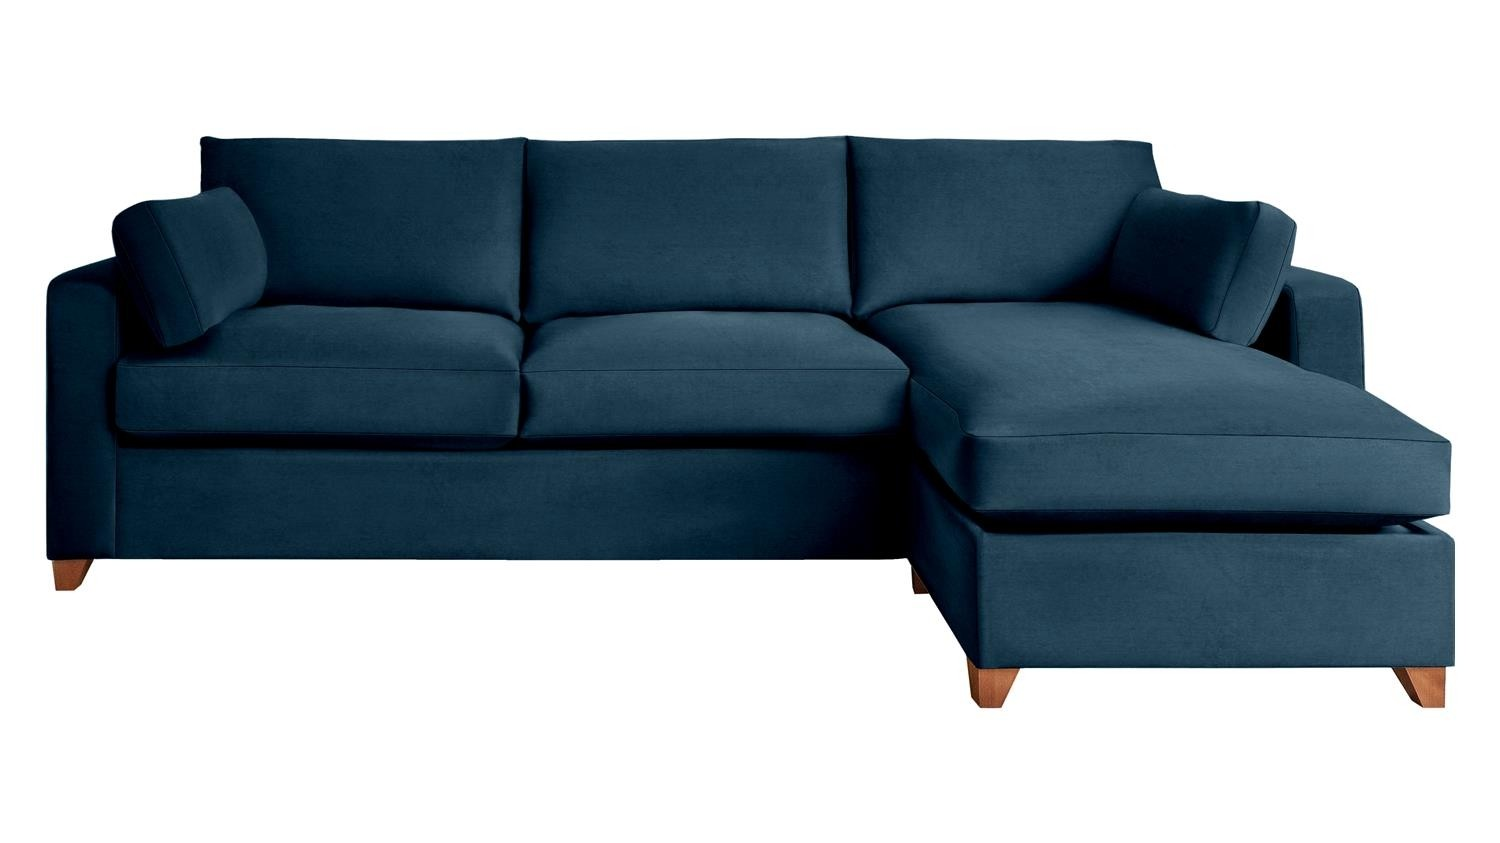 The Ashwell 4 Seater Right Chaise Storage Sofa Bed